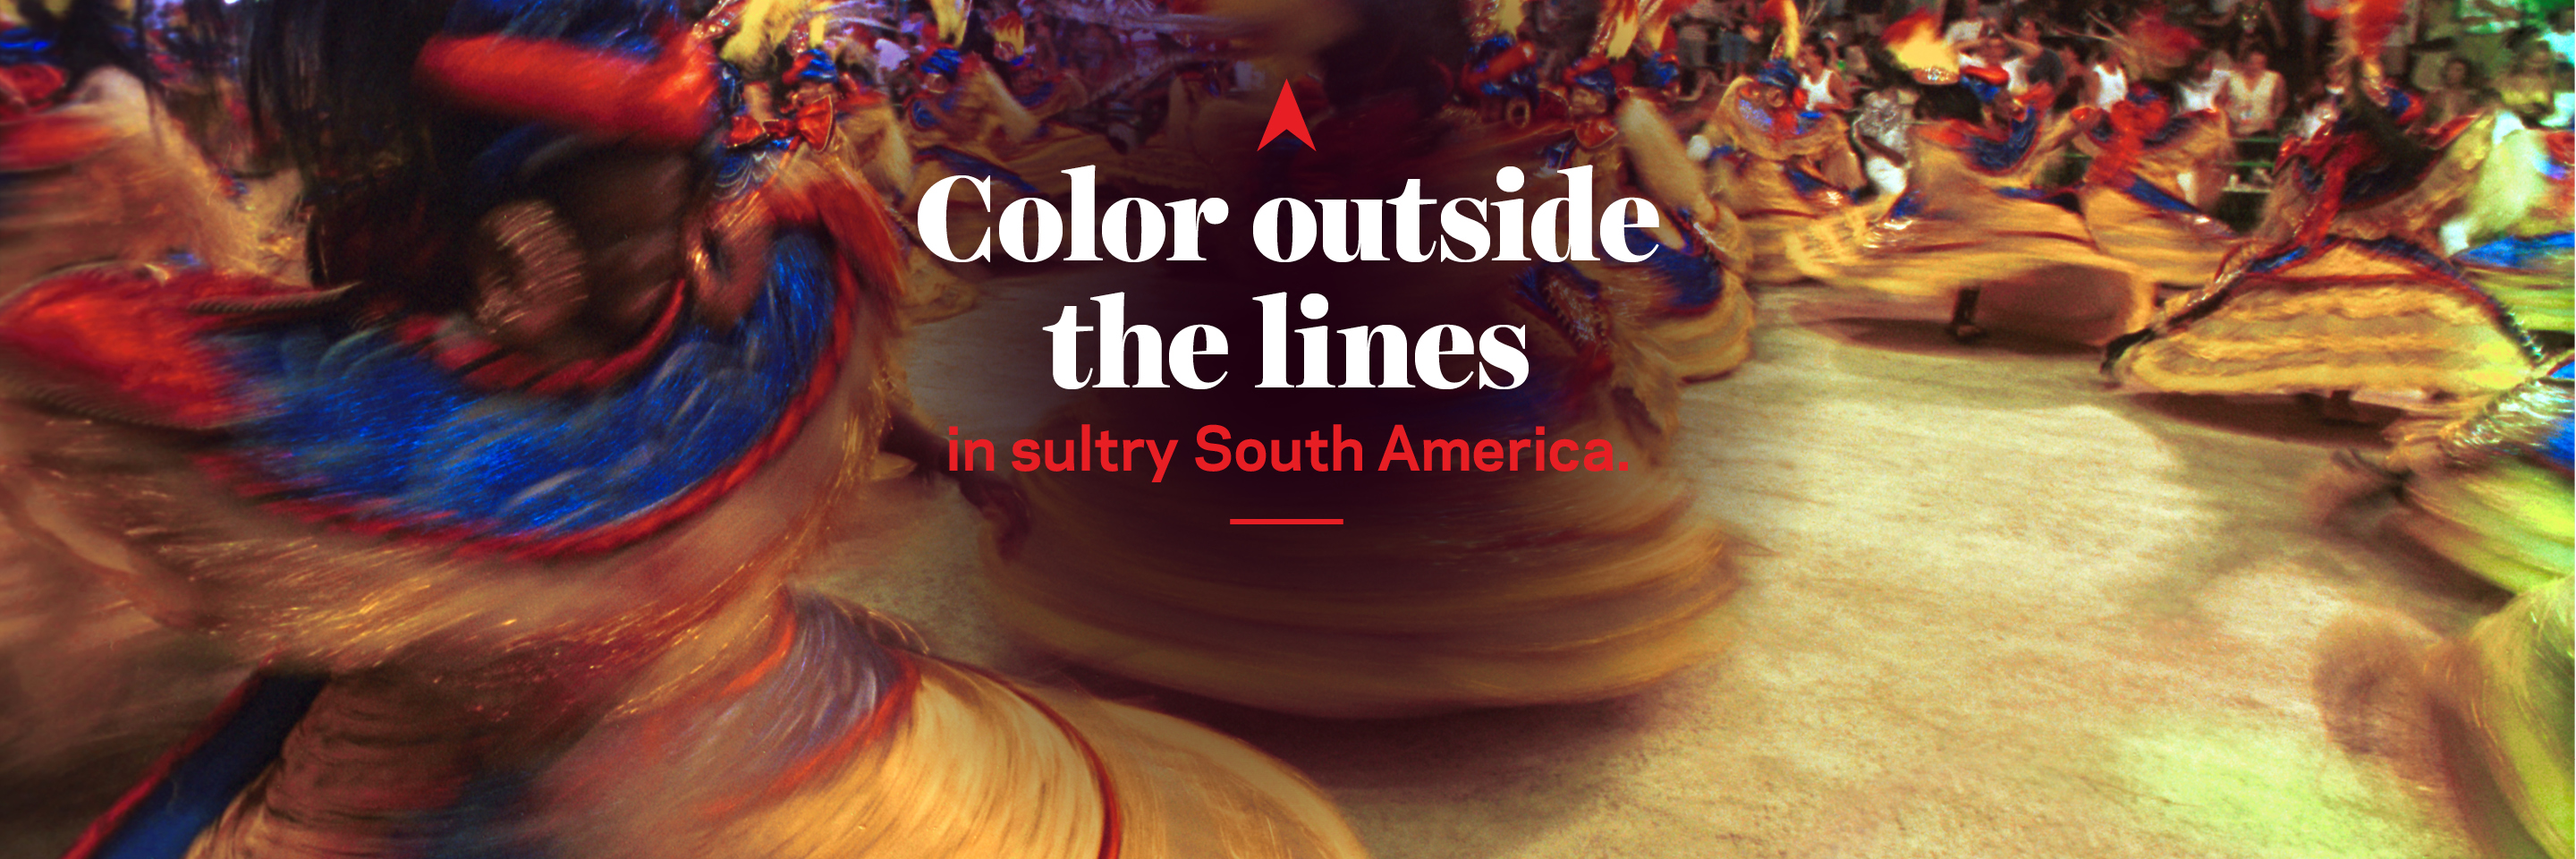 CSA_Header_Color-outside-the-lines-in-sultry-South-America.jpg